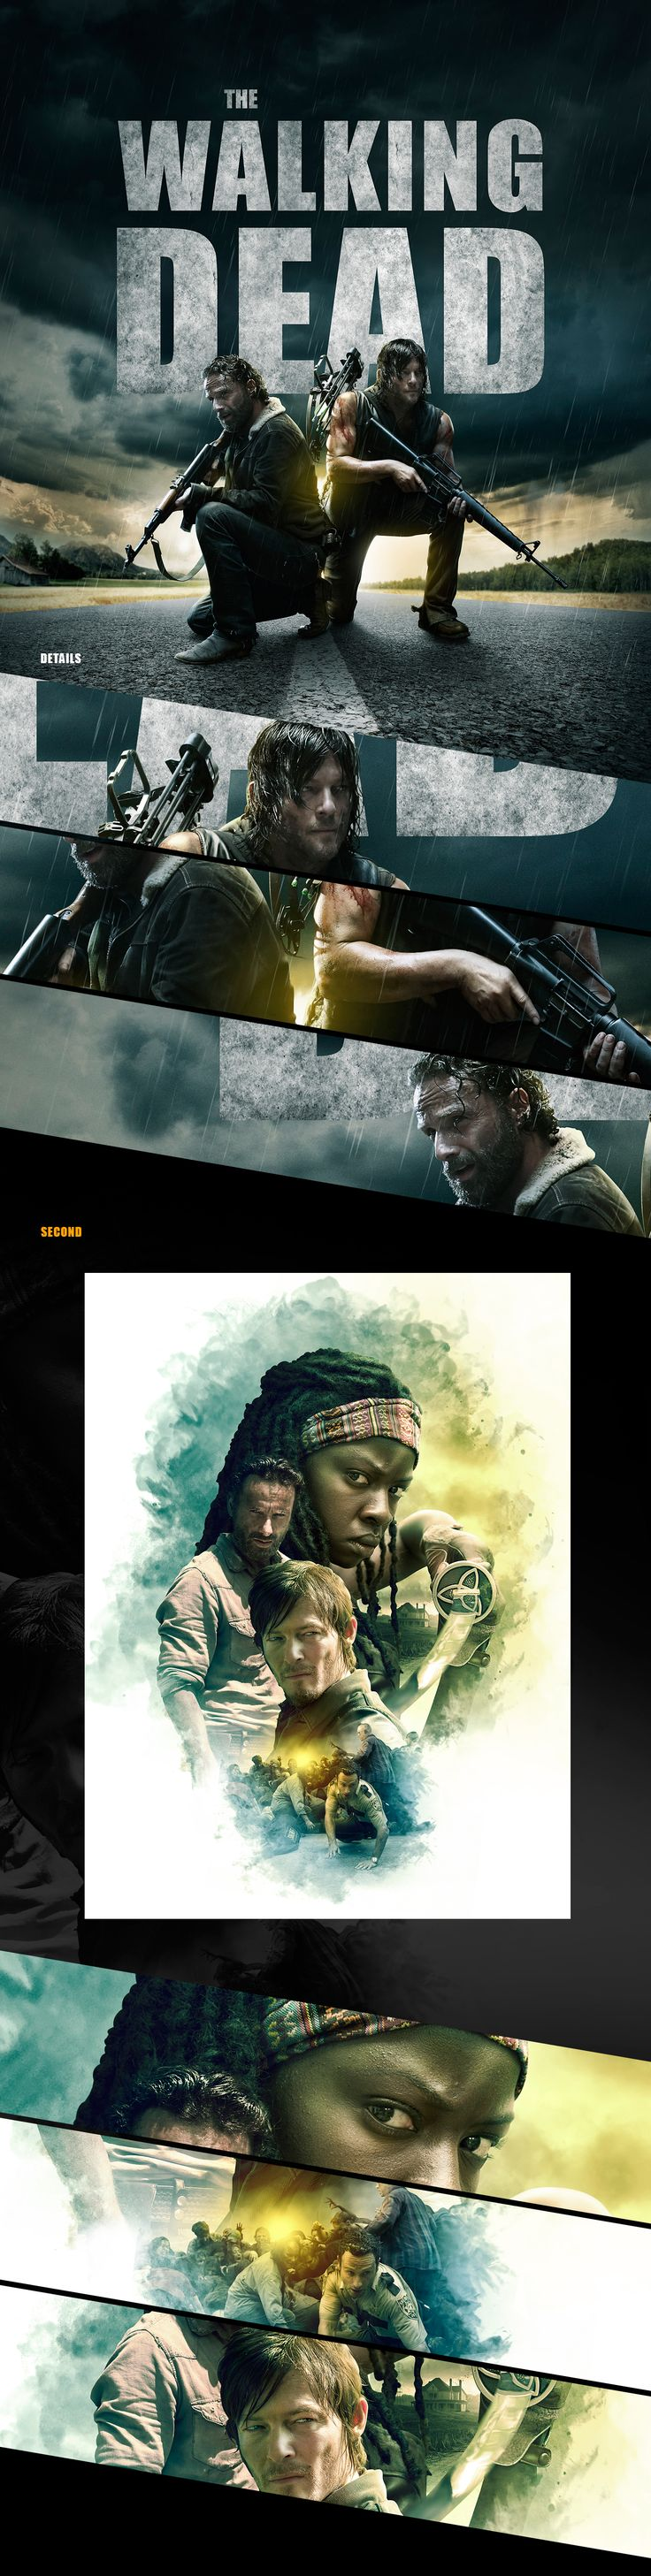 The Walkind Dead Posters on Behance